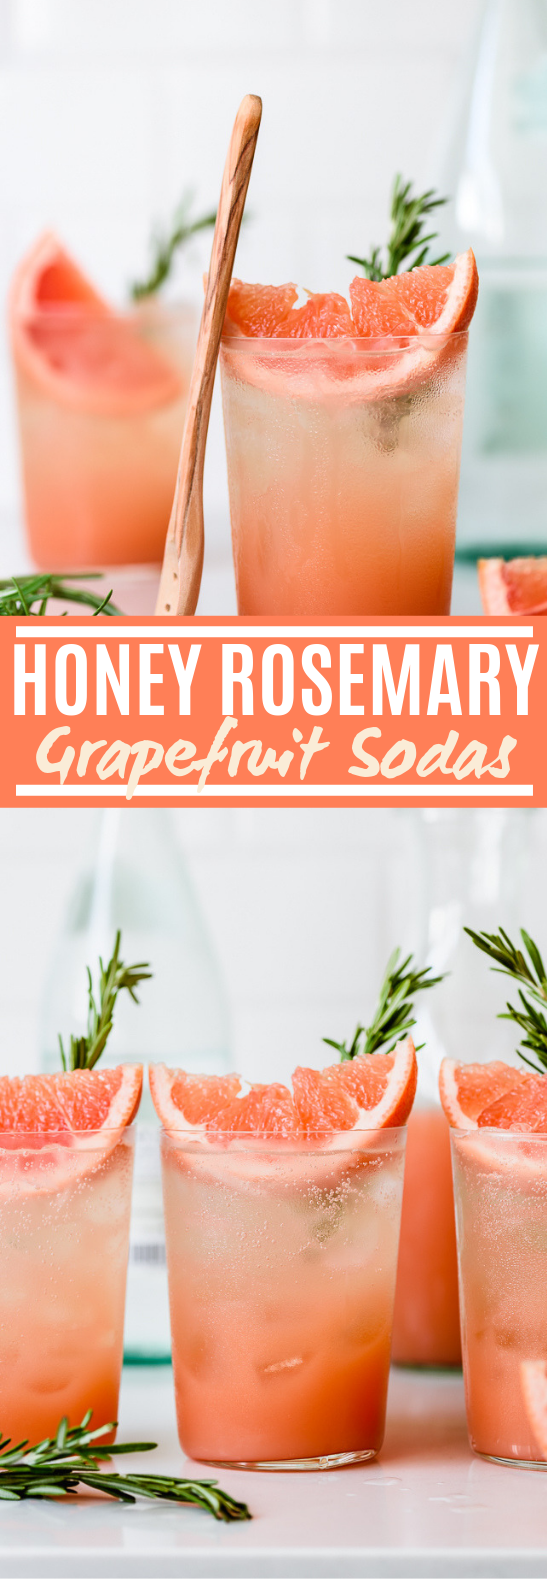 Honey Rosemary Grapefruit Sodas #drinks #nonalcohol